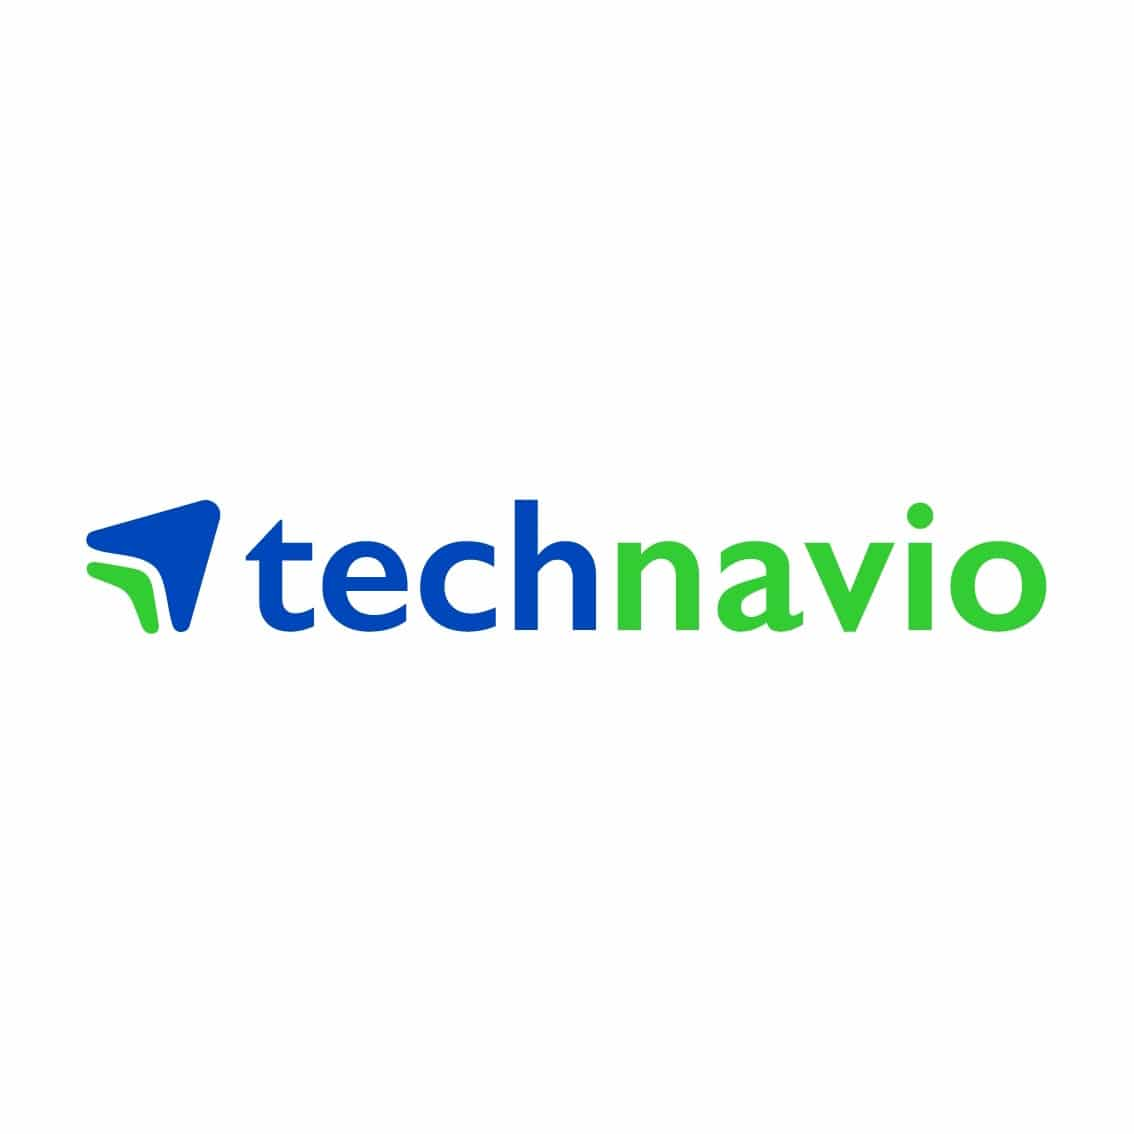 Global passive component market to grow at a CAGR of more than 6% in 2017-2021 says Technavio